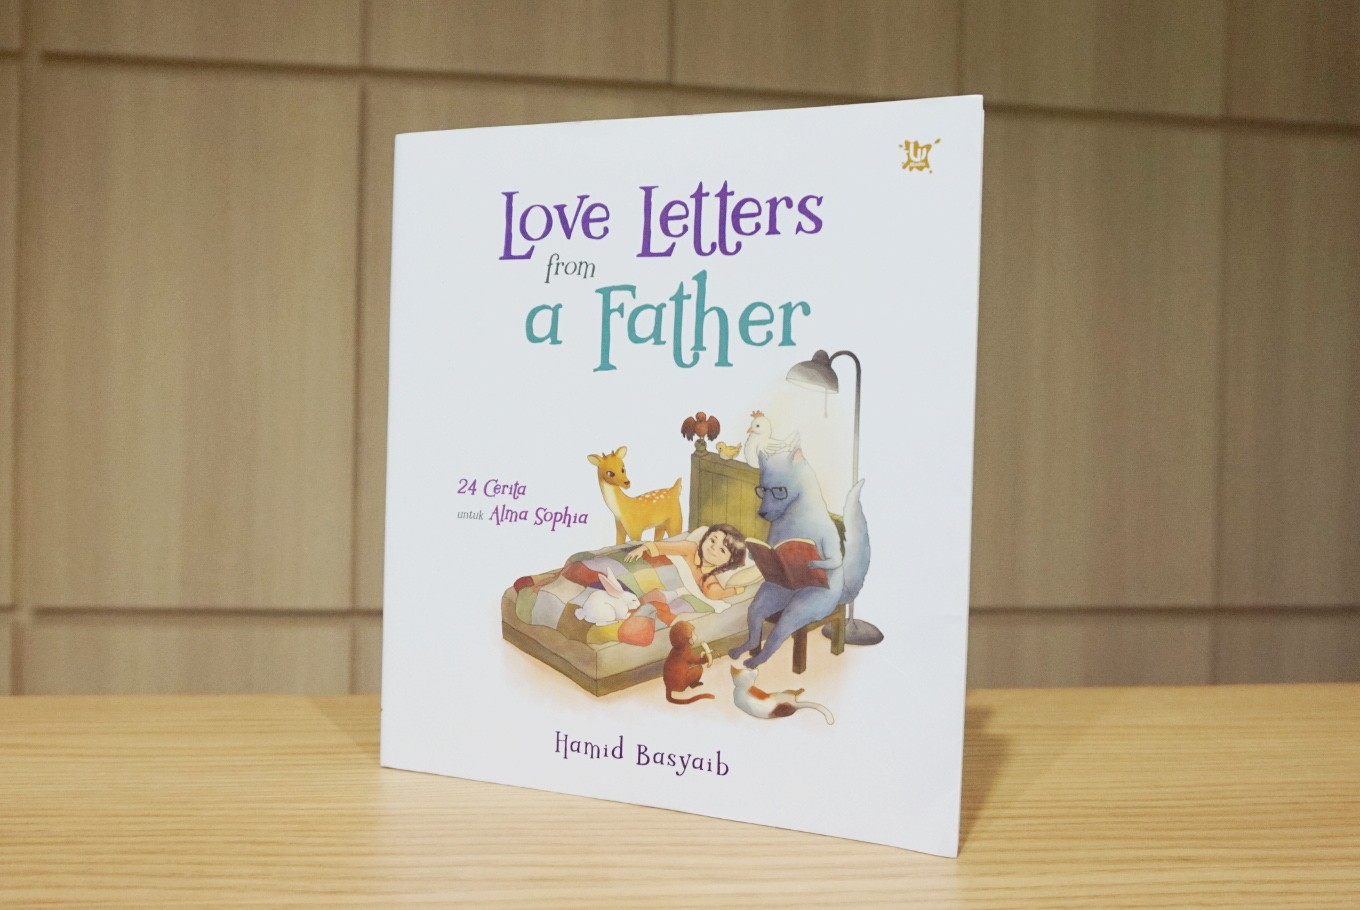 'Love Letters from a Father: A celebration of father-daughter relationships